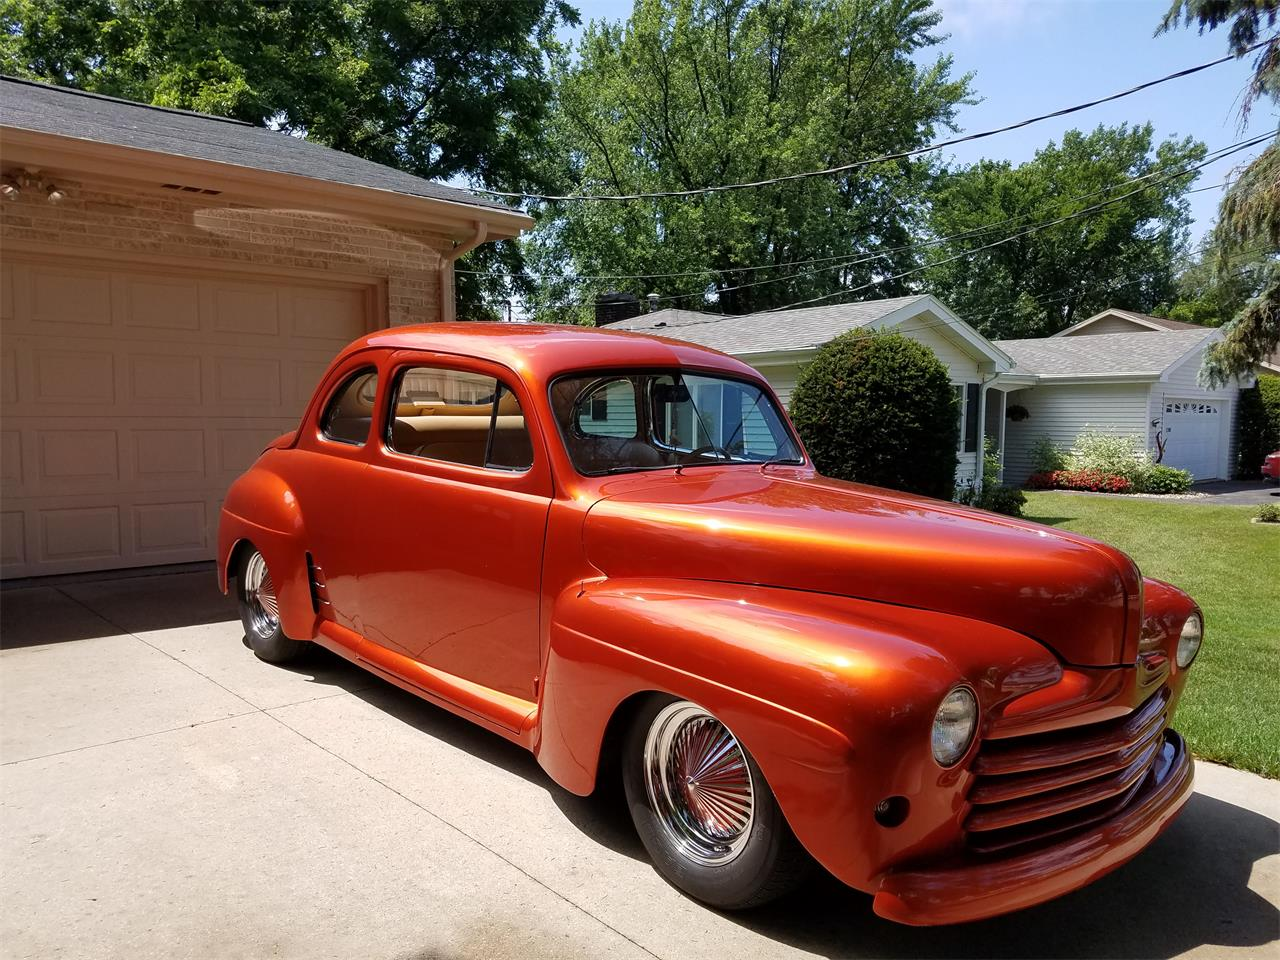 1947 Ford Coupe for sale in Dubuque, IA